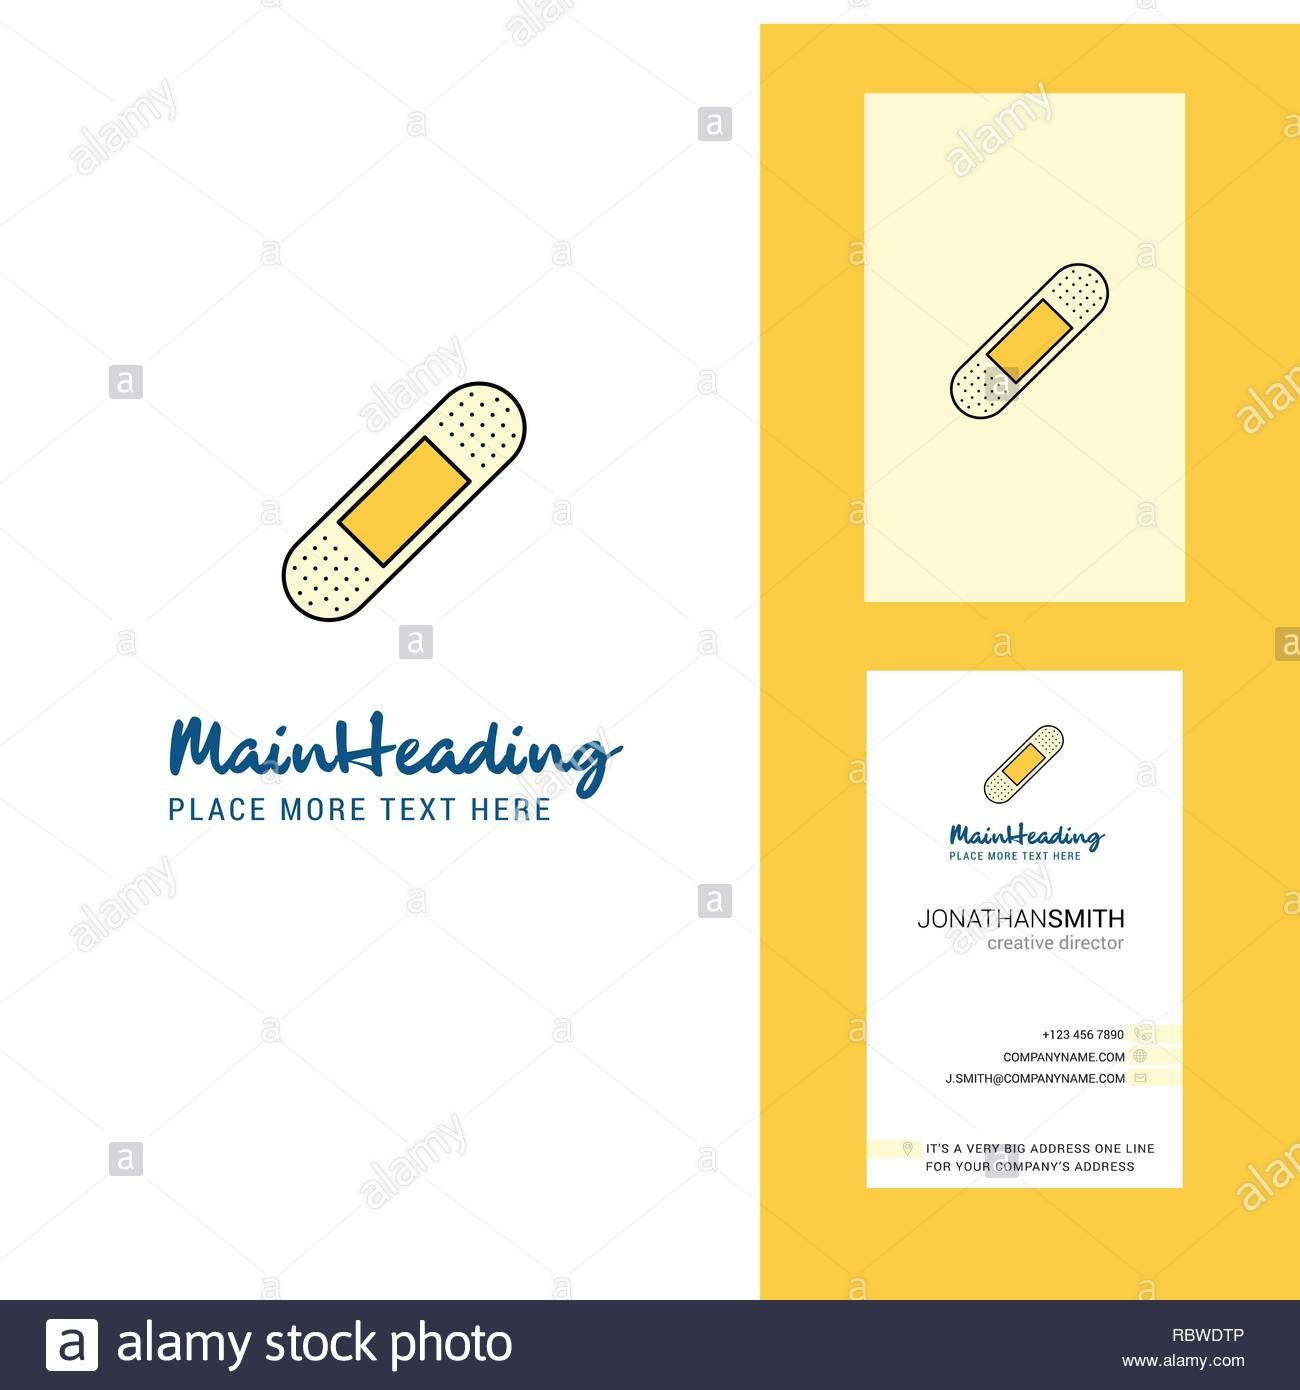 Plaster Creative Logo And Business Card Vertical Design Throughout Plastering Business Cards Templates Pr Business Card Template Card Template Creative Logo